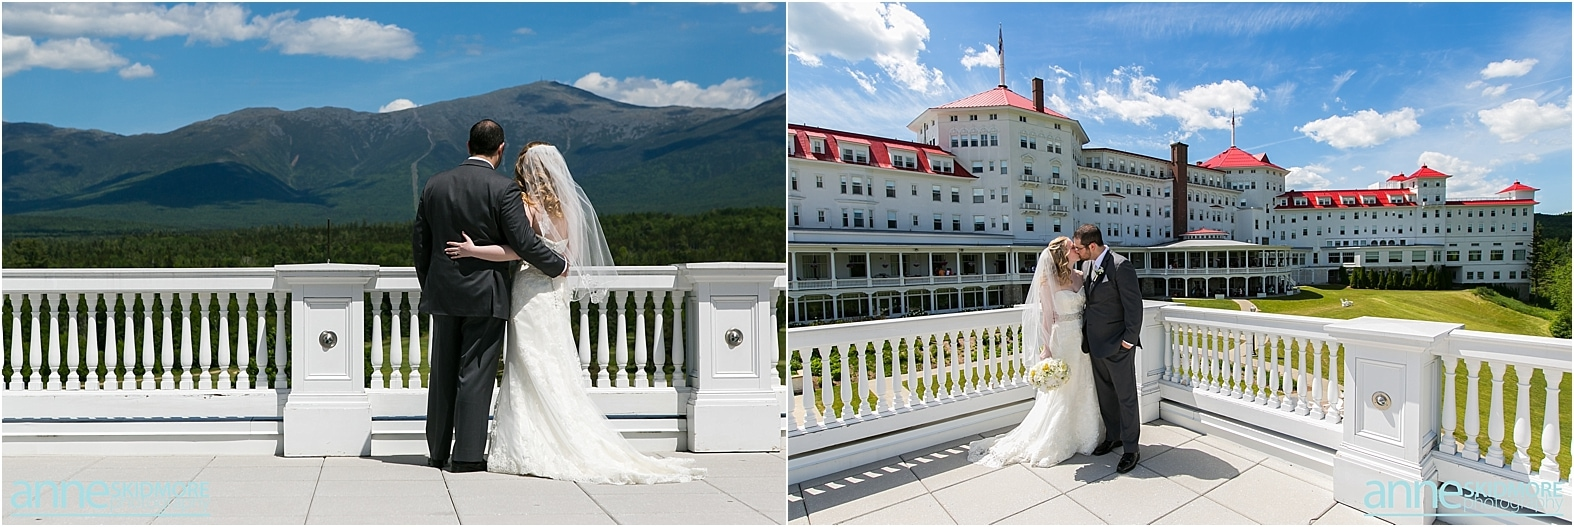 Mount_Washington_Hotel_Wedding_0020